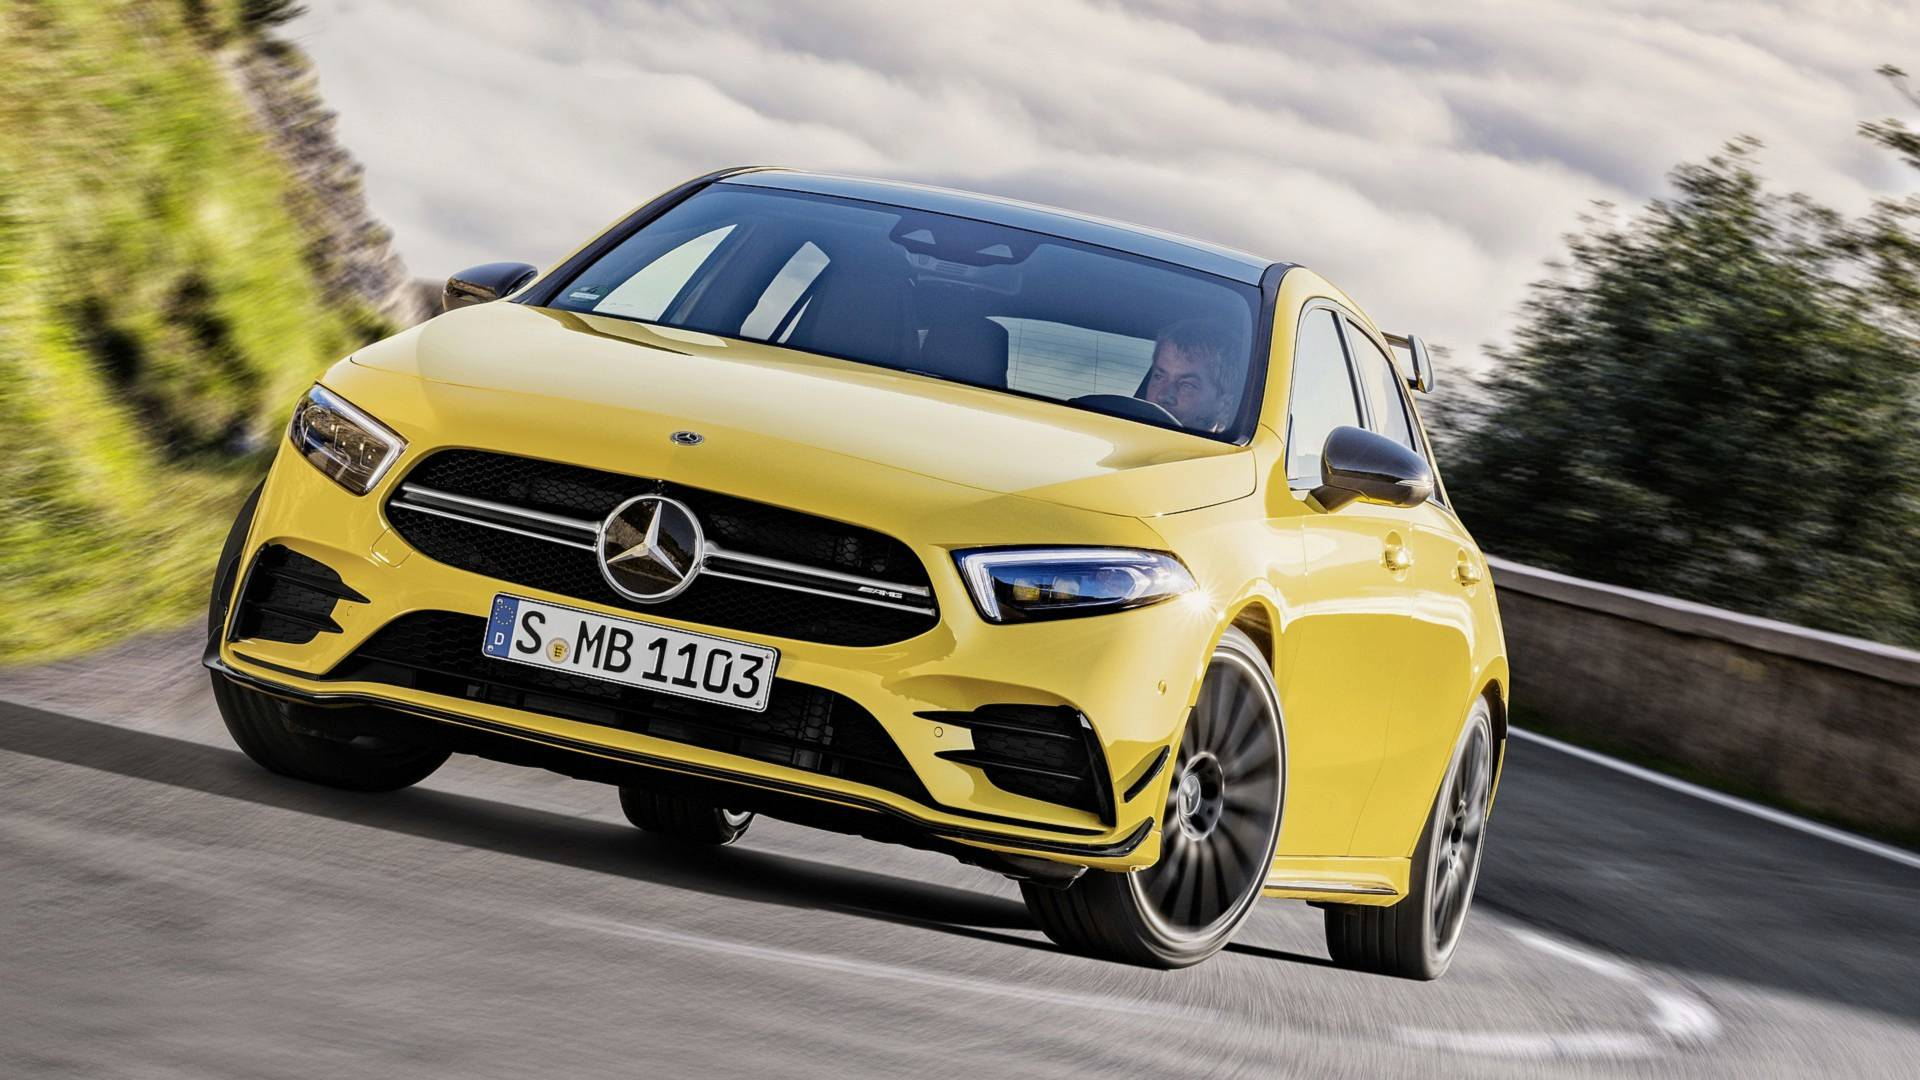 2019 Mercedes Amg A35 4matic Goes Official With 302 Horsepower